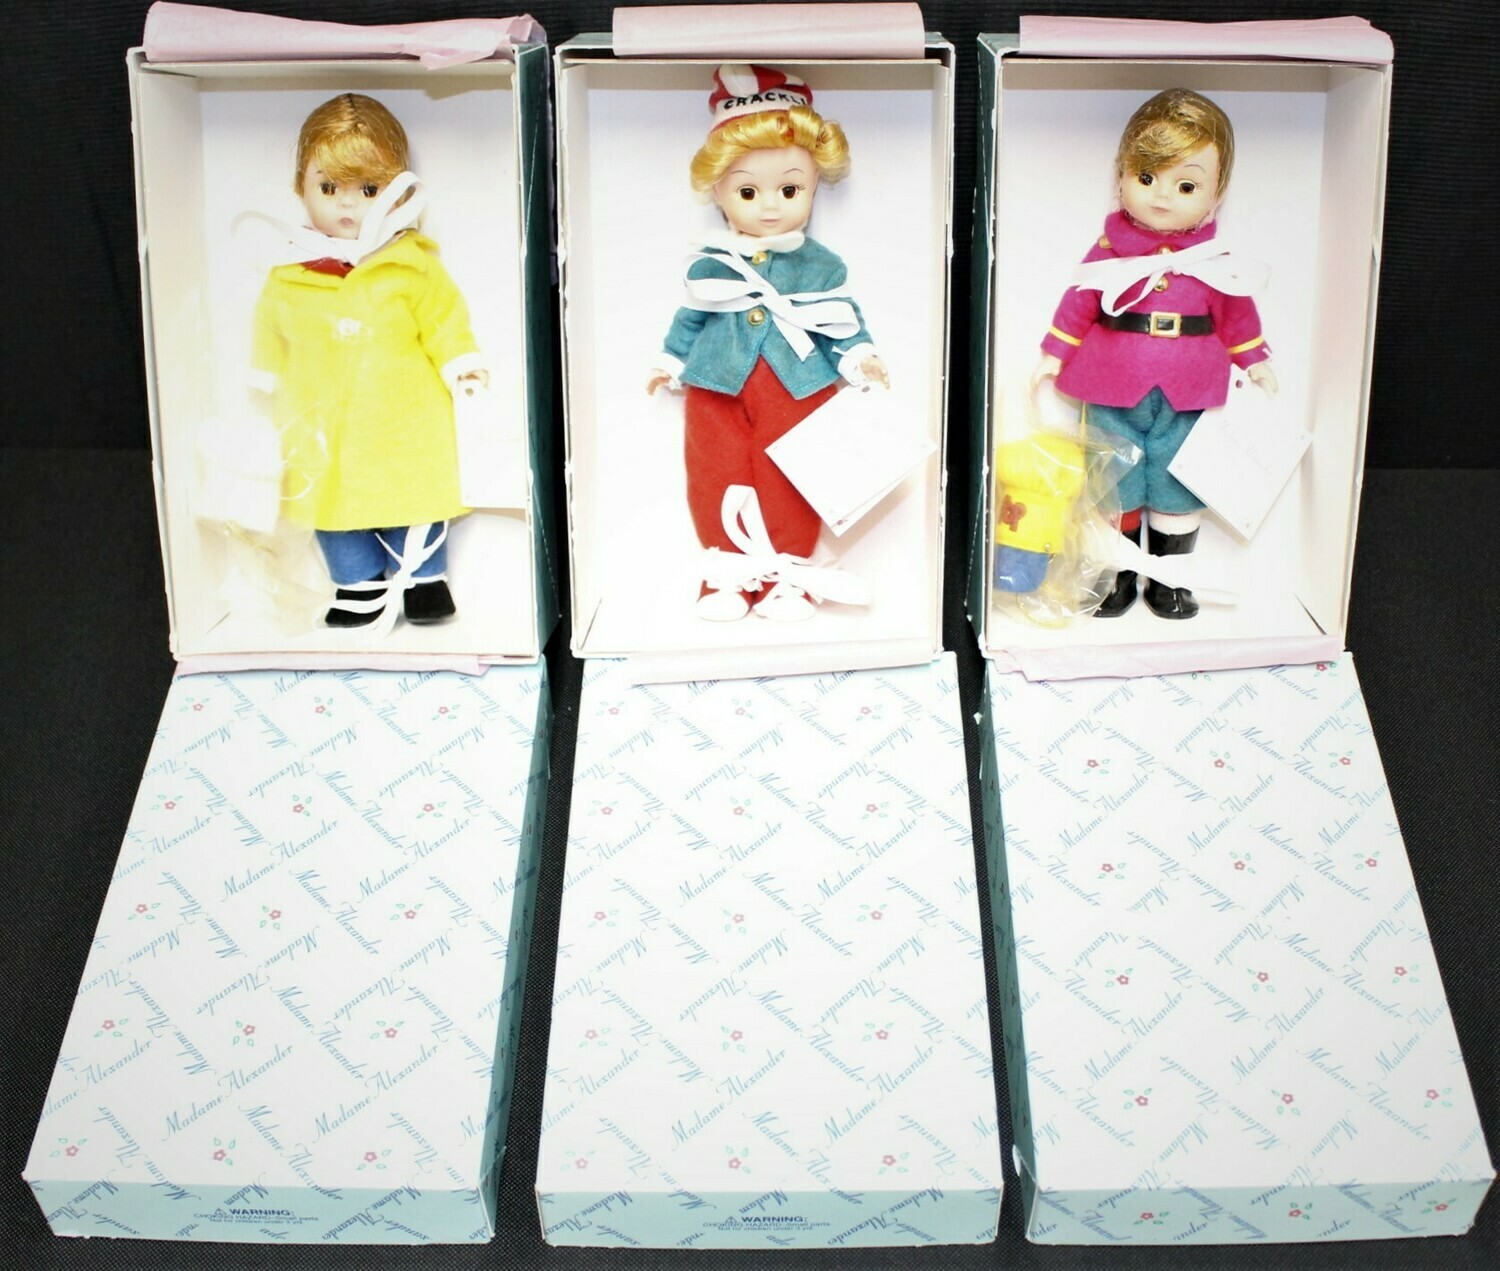 Set of 3 Madame Alexander Rice Krispies Dolls Snap, Crackle & Pop w/Tags & Boxes